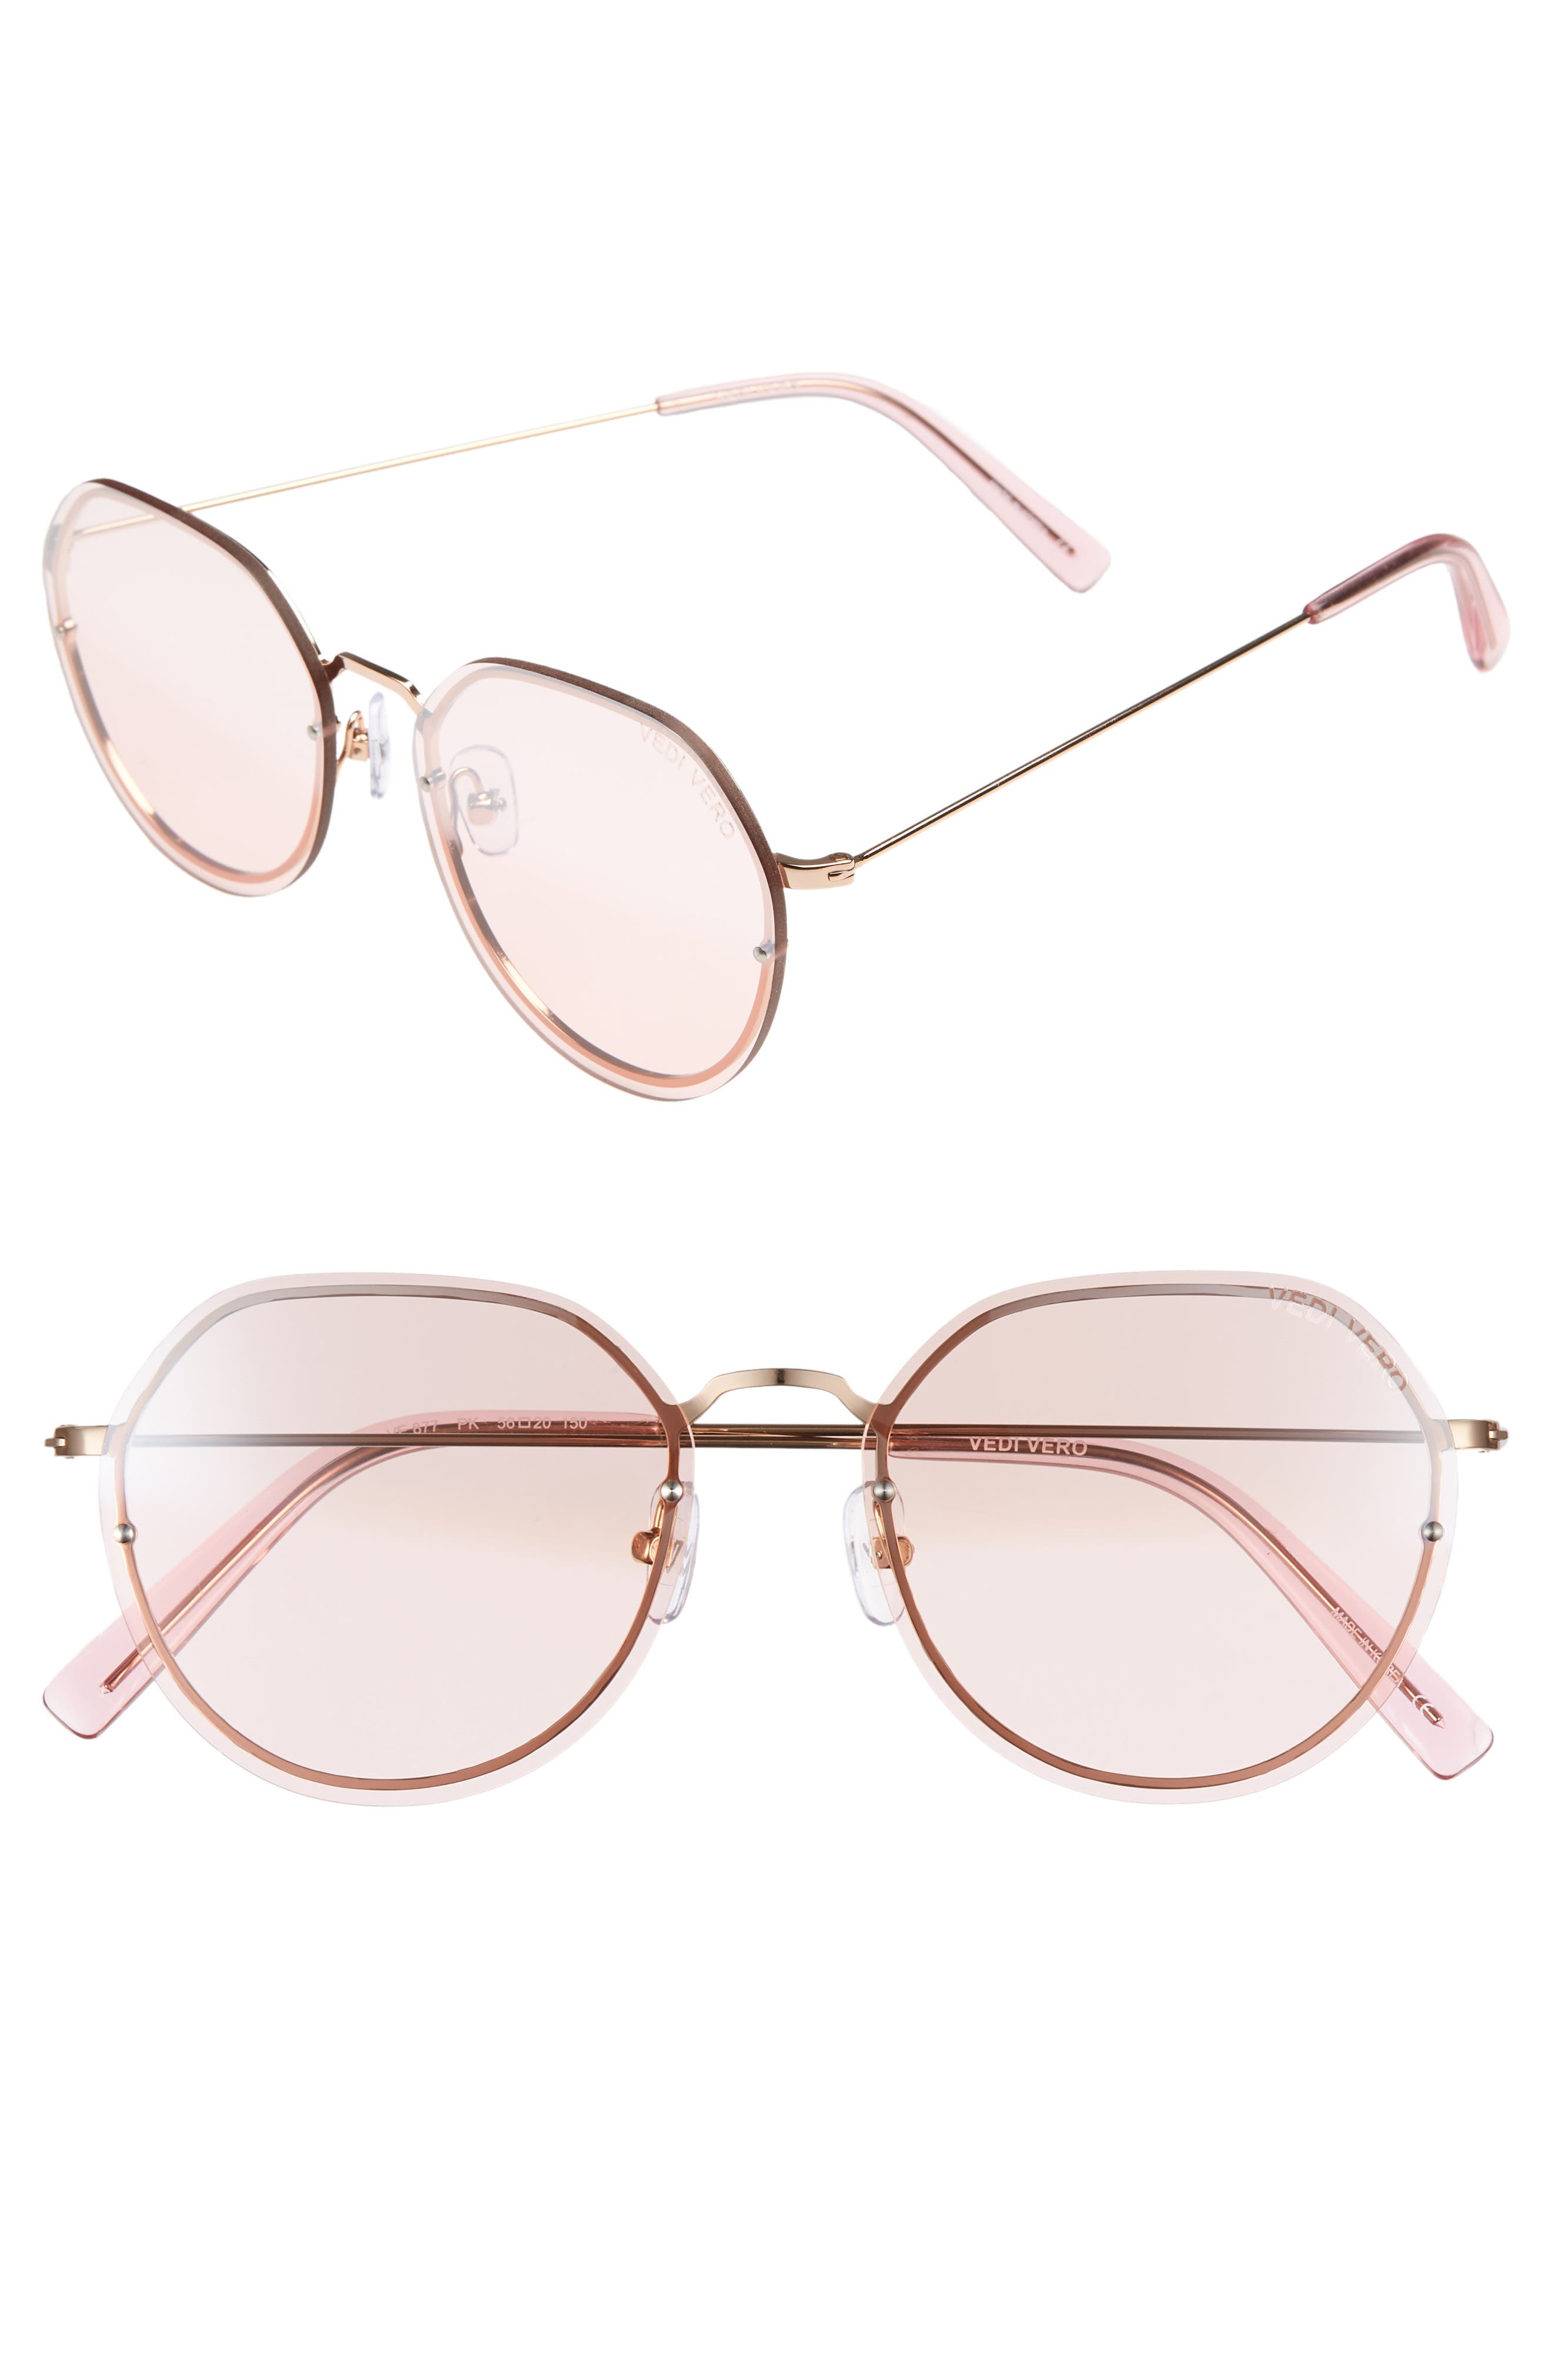 VEDI VERO 56Mm Round Sunglasses - Pink